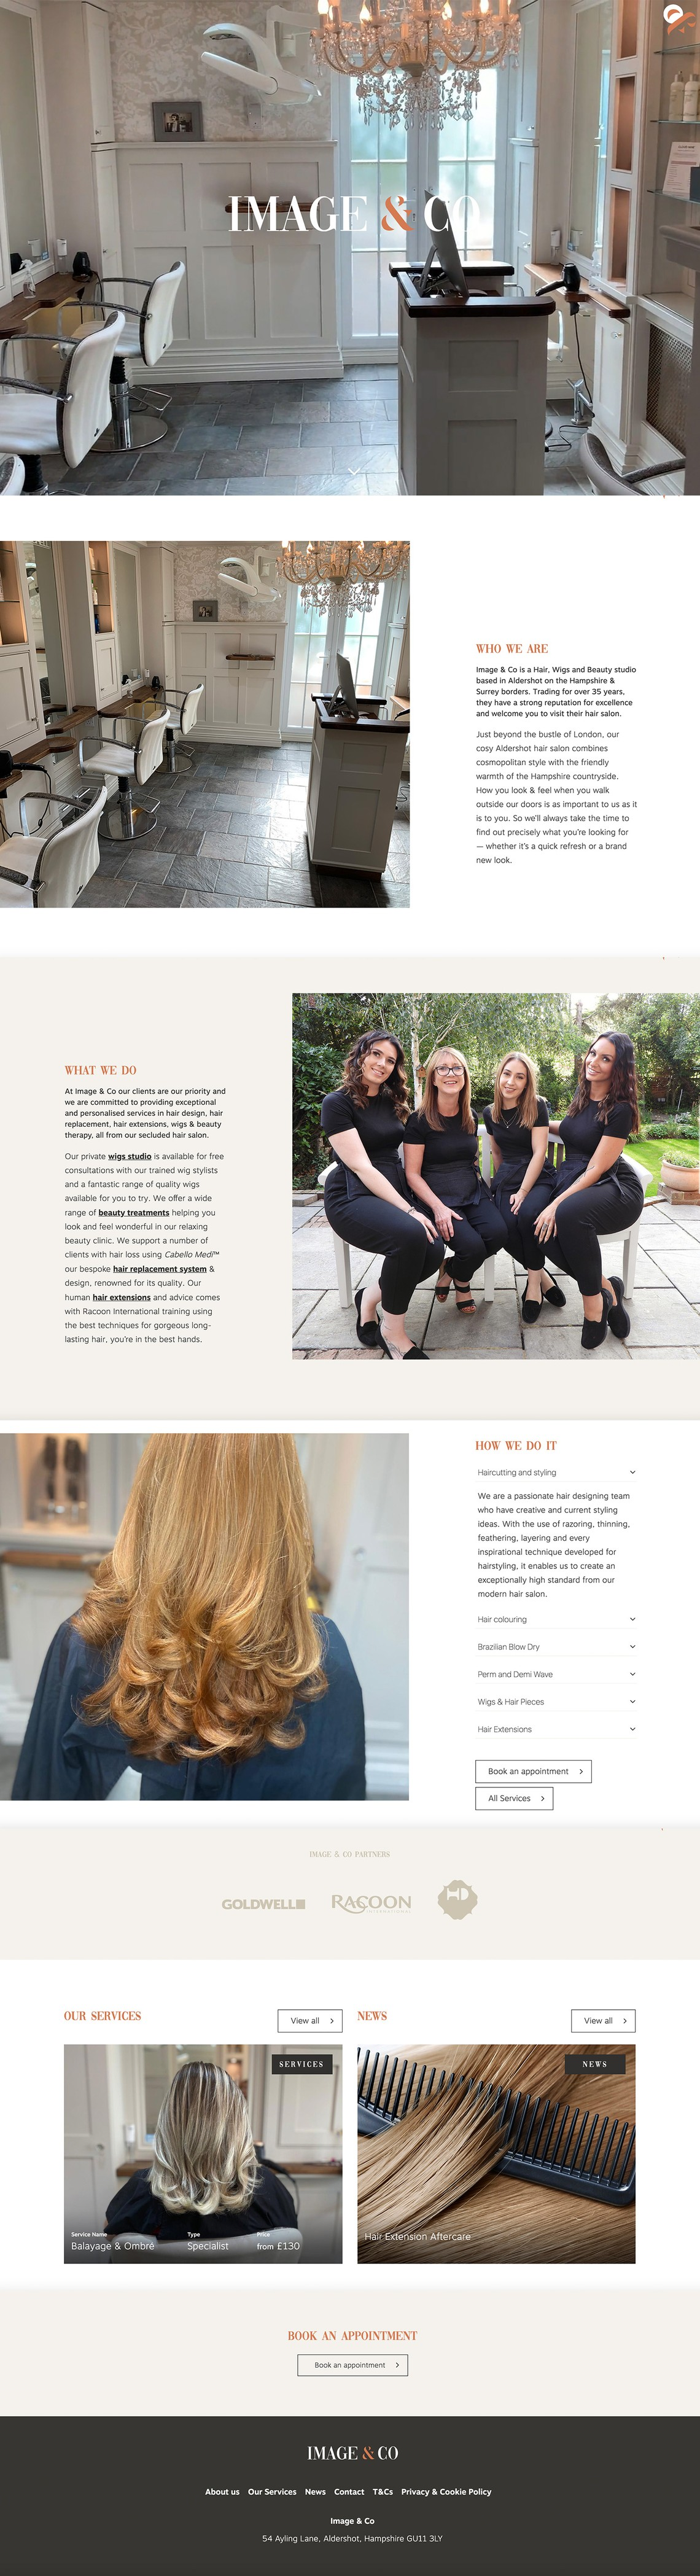 Image & Co Website Design